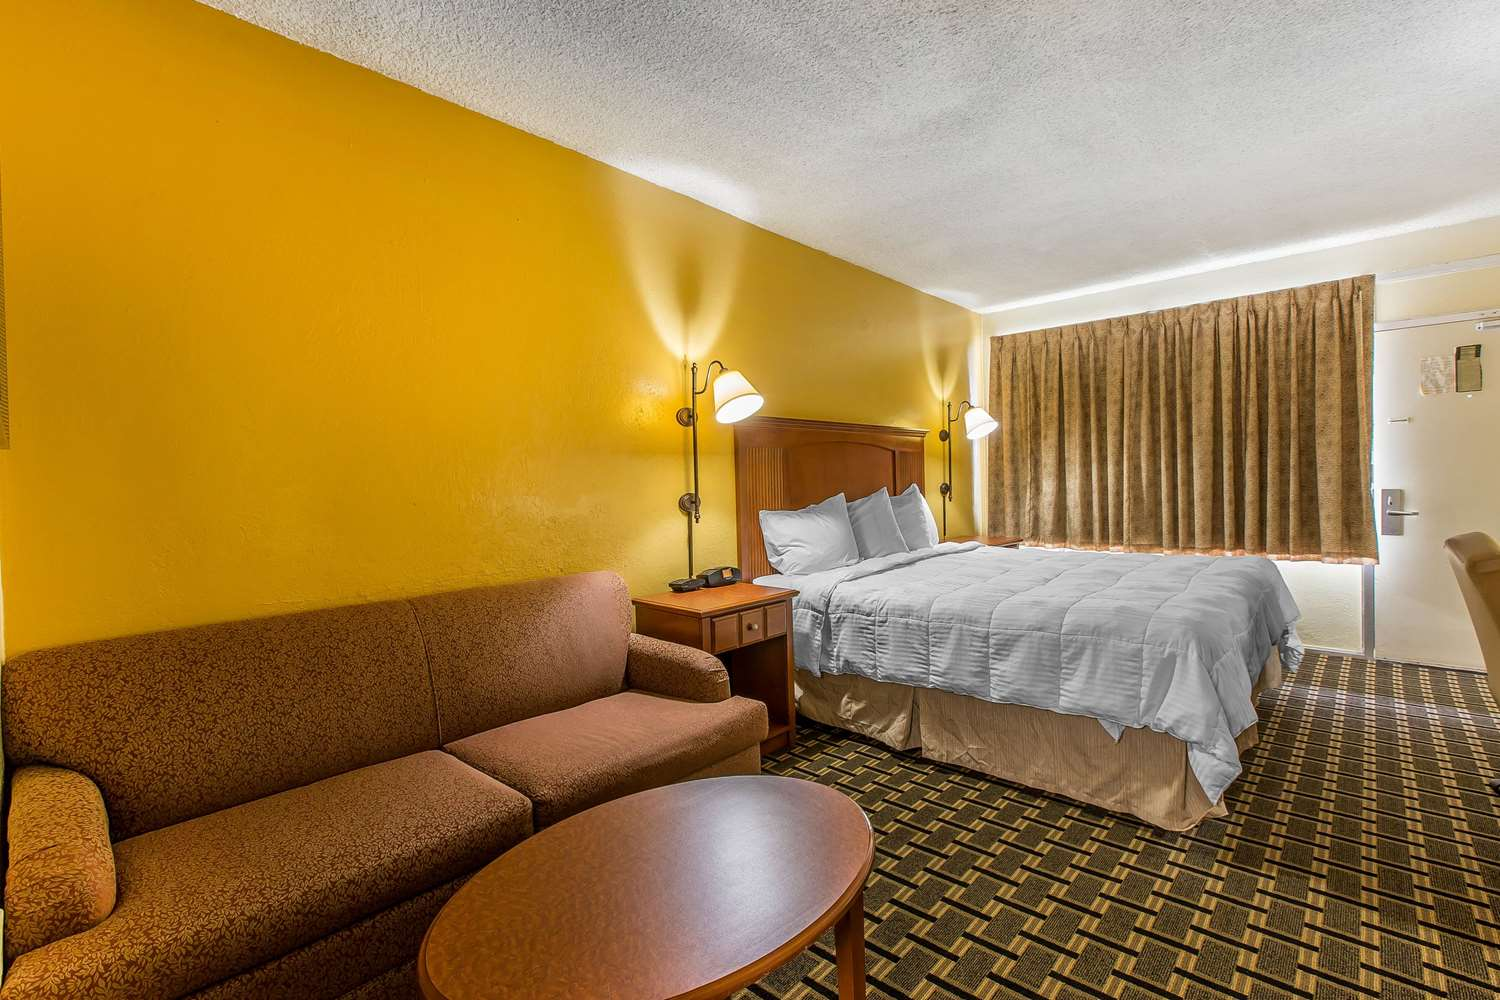 Room - Econo Lodge Old Macon Road Byron